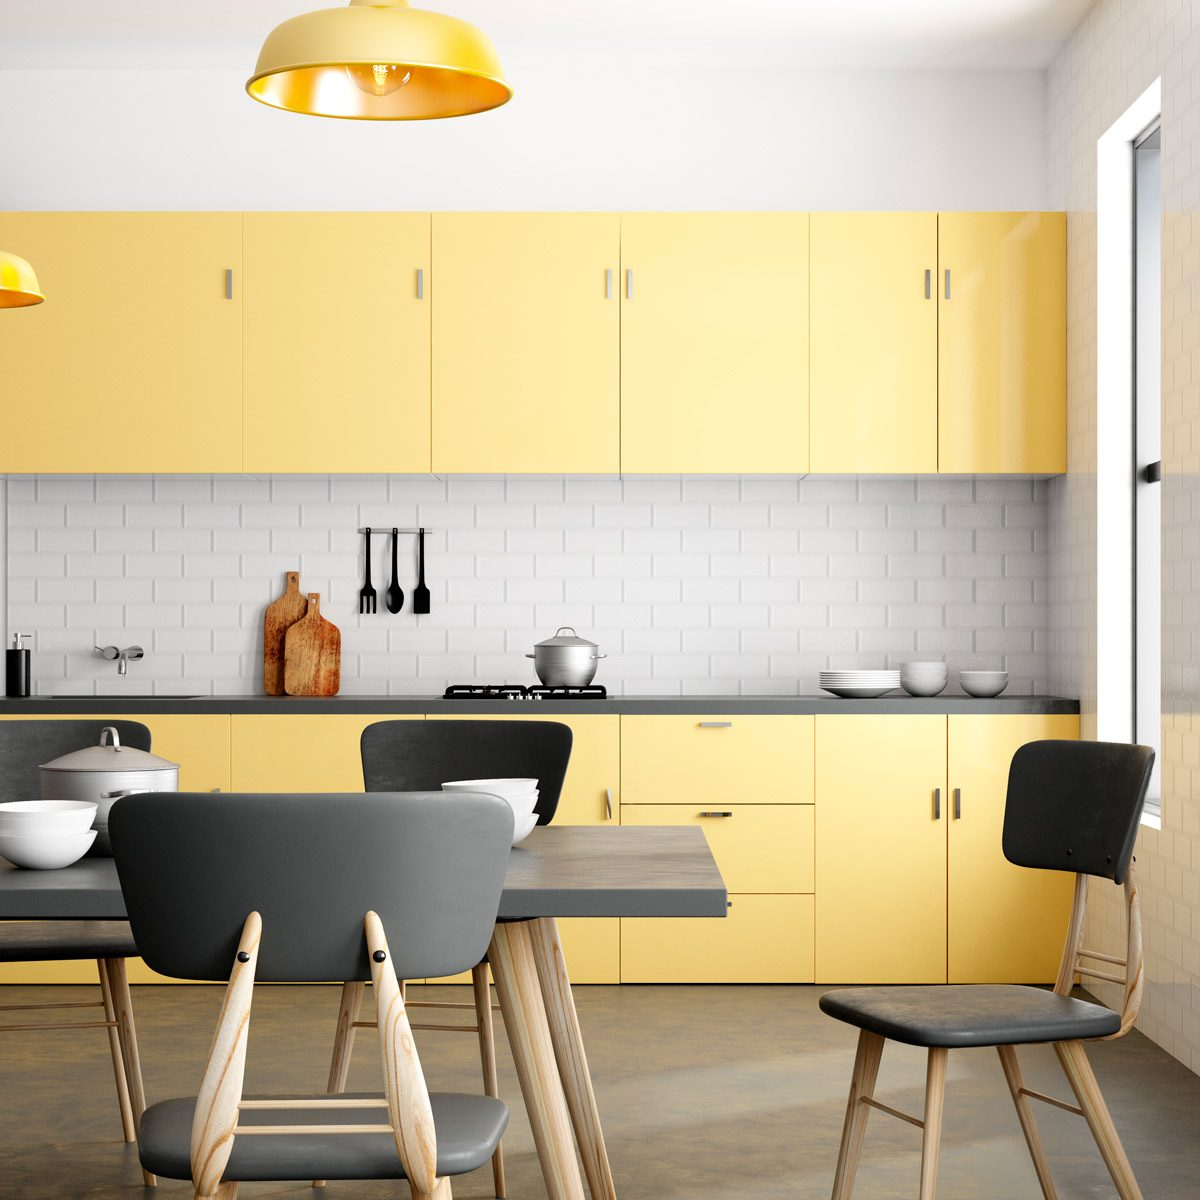 Kitchen Cabinet Paint Colors that Make a Splash | Family ... on